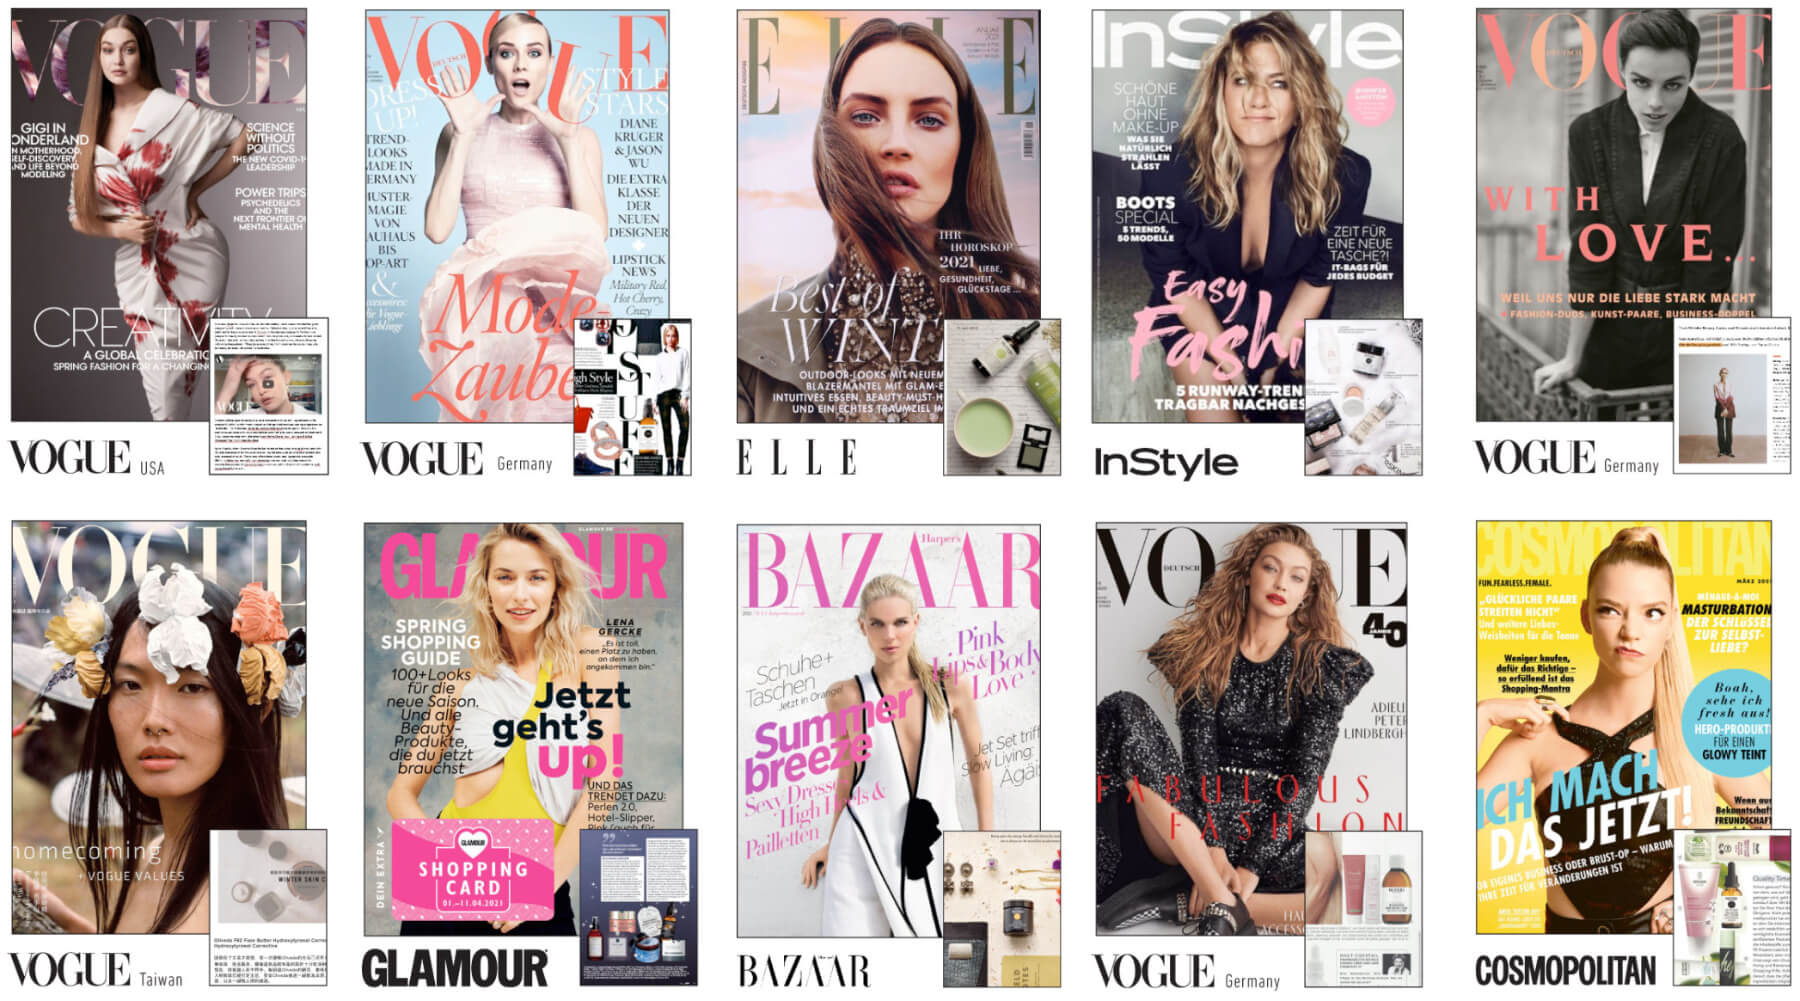 Listing of publications featuring Olive Tree People products, including Glamour, Cosmpolitan, and Vogue